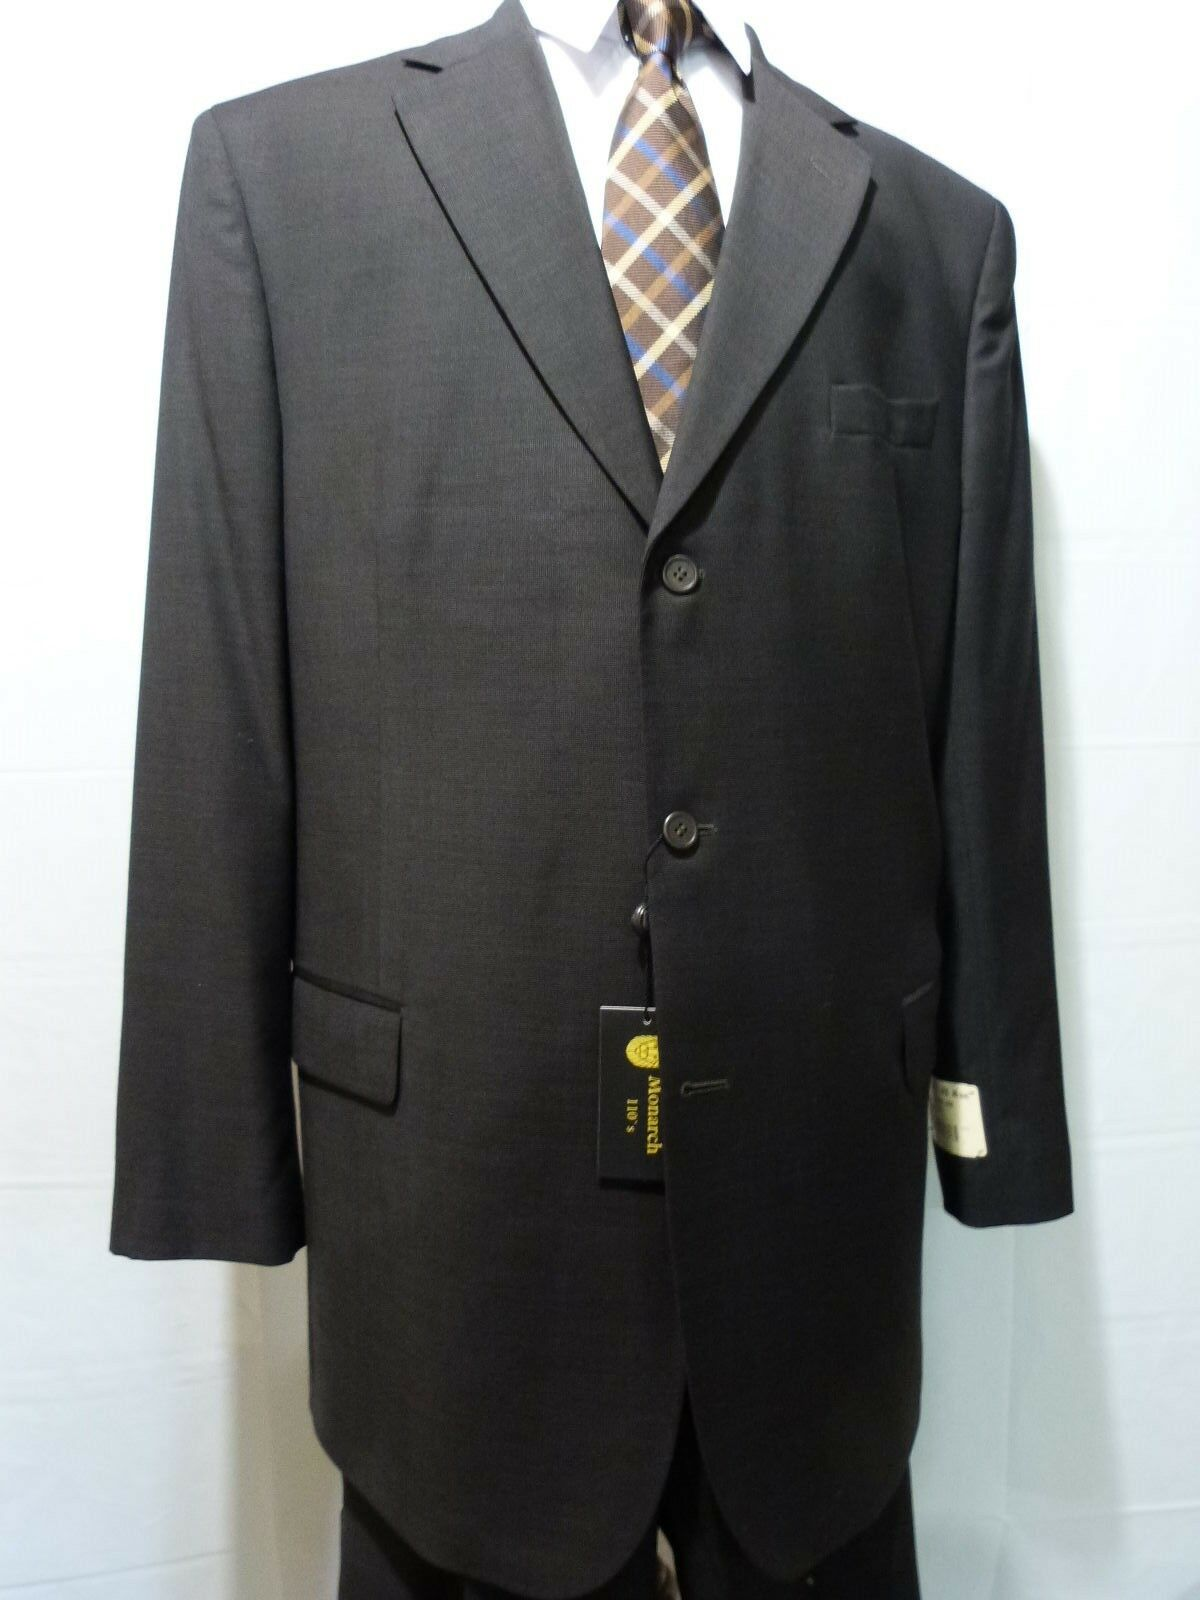 Men's Suit, 46 X-Long, 100% Wool, Brown,NWT